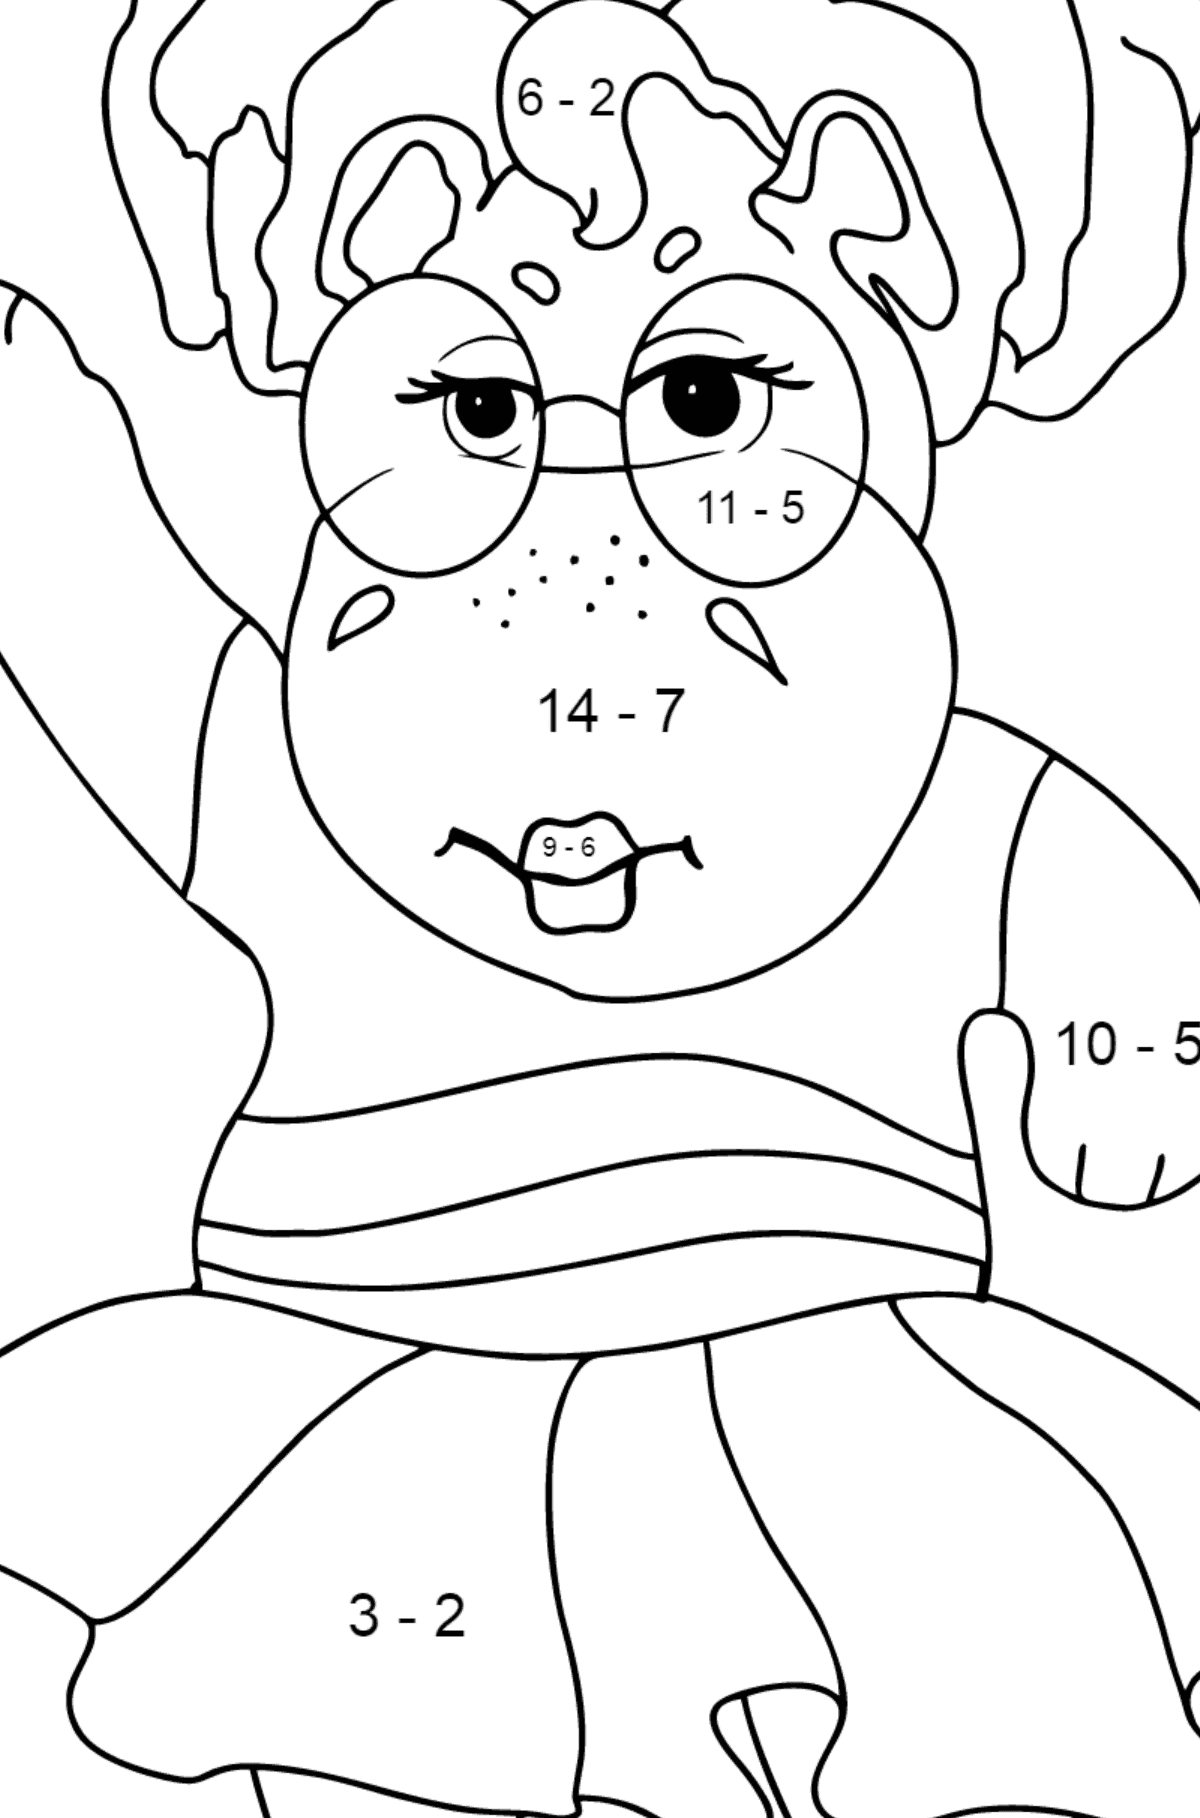 Coloring Page - A Hippo is Dancing in Sunglasses for Children  - Color by Number Substraction